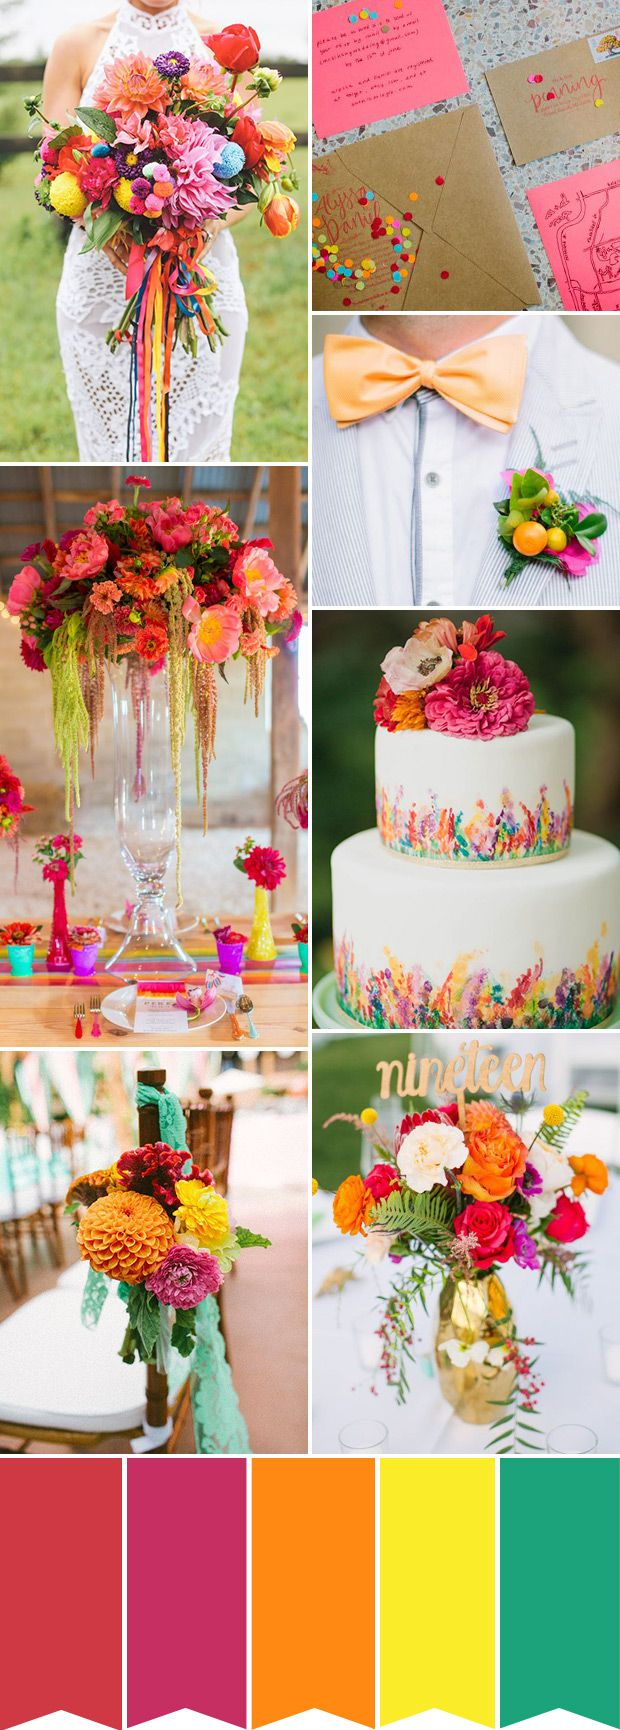 colorful summer wedding inspiration | www.onefabday.com